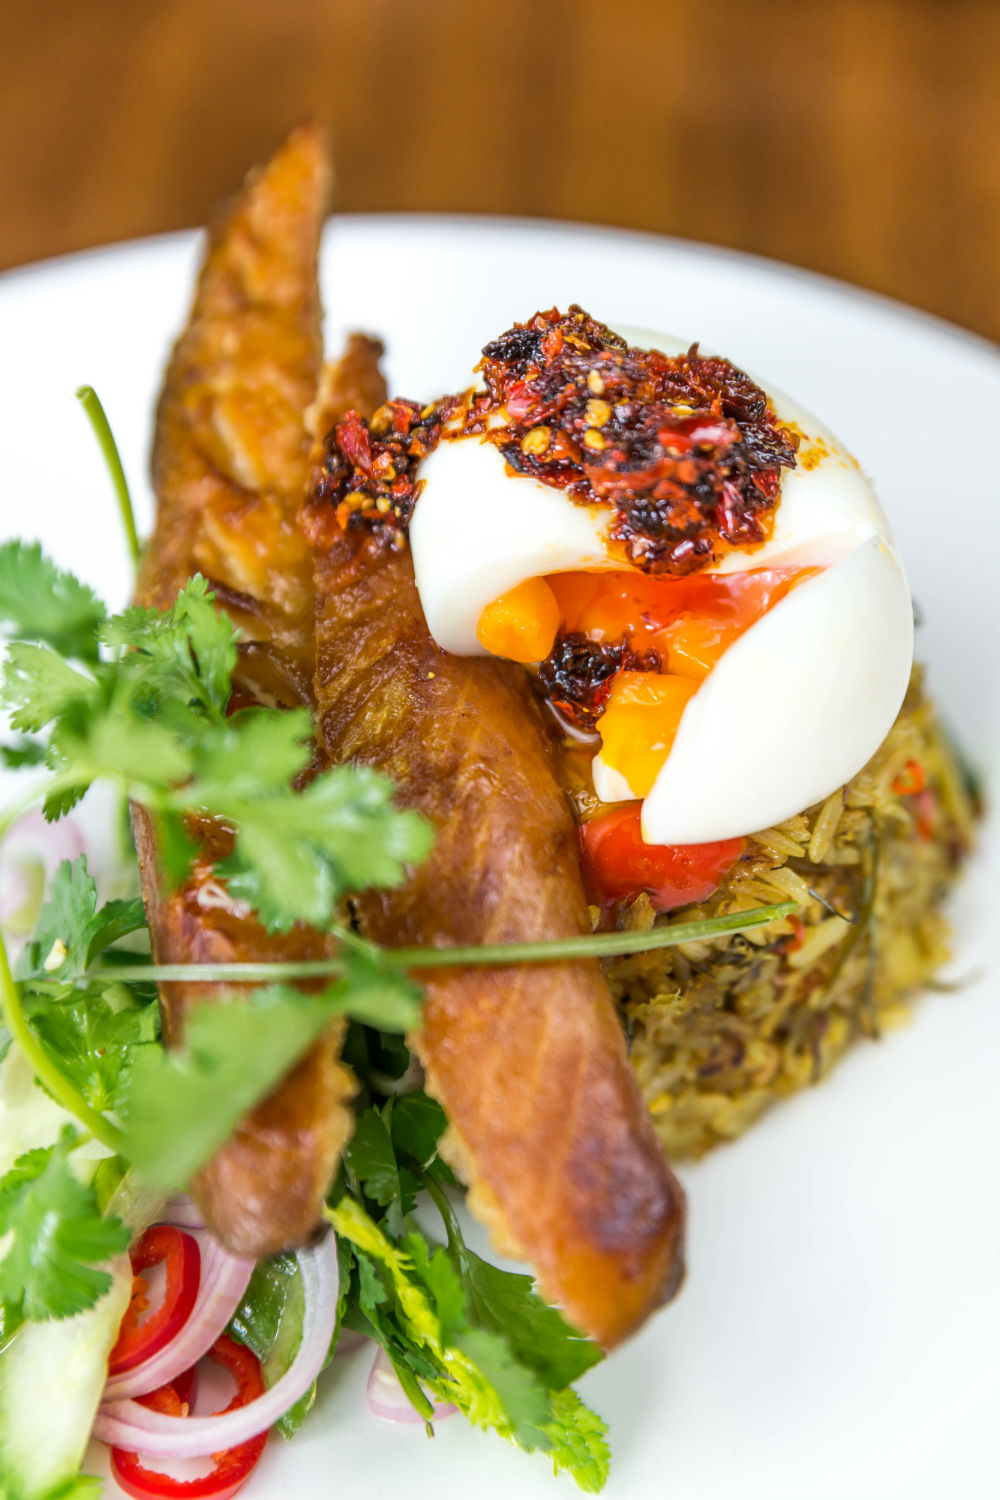 Best places to have brunch in London